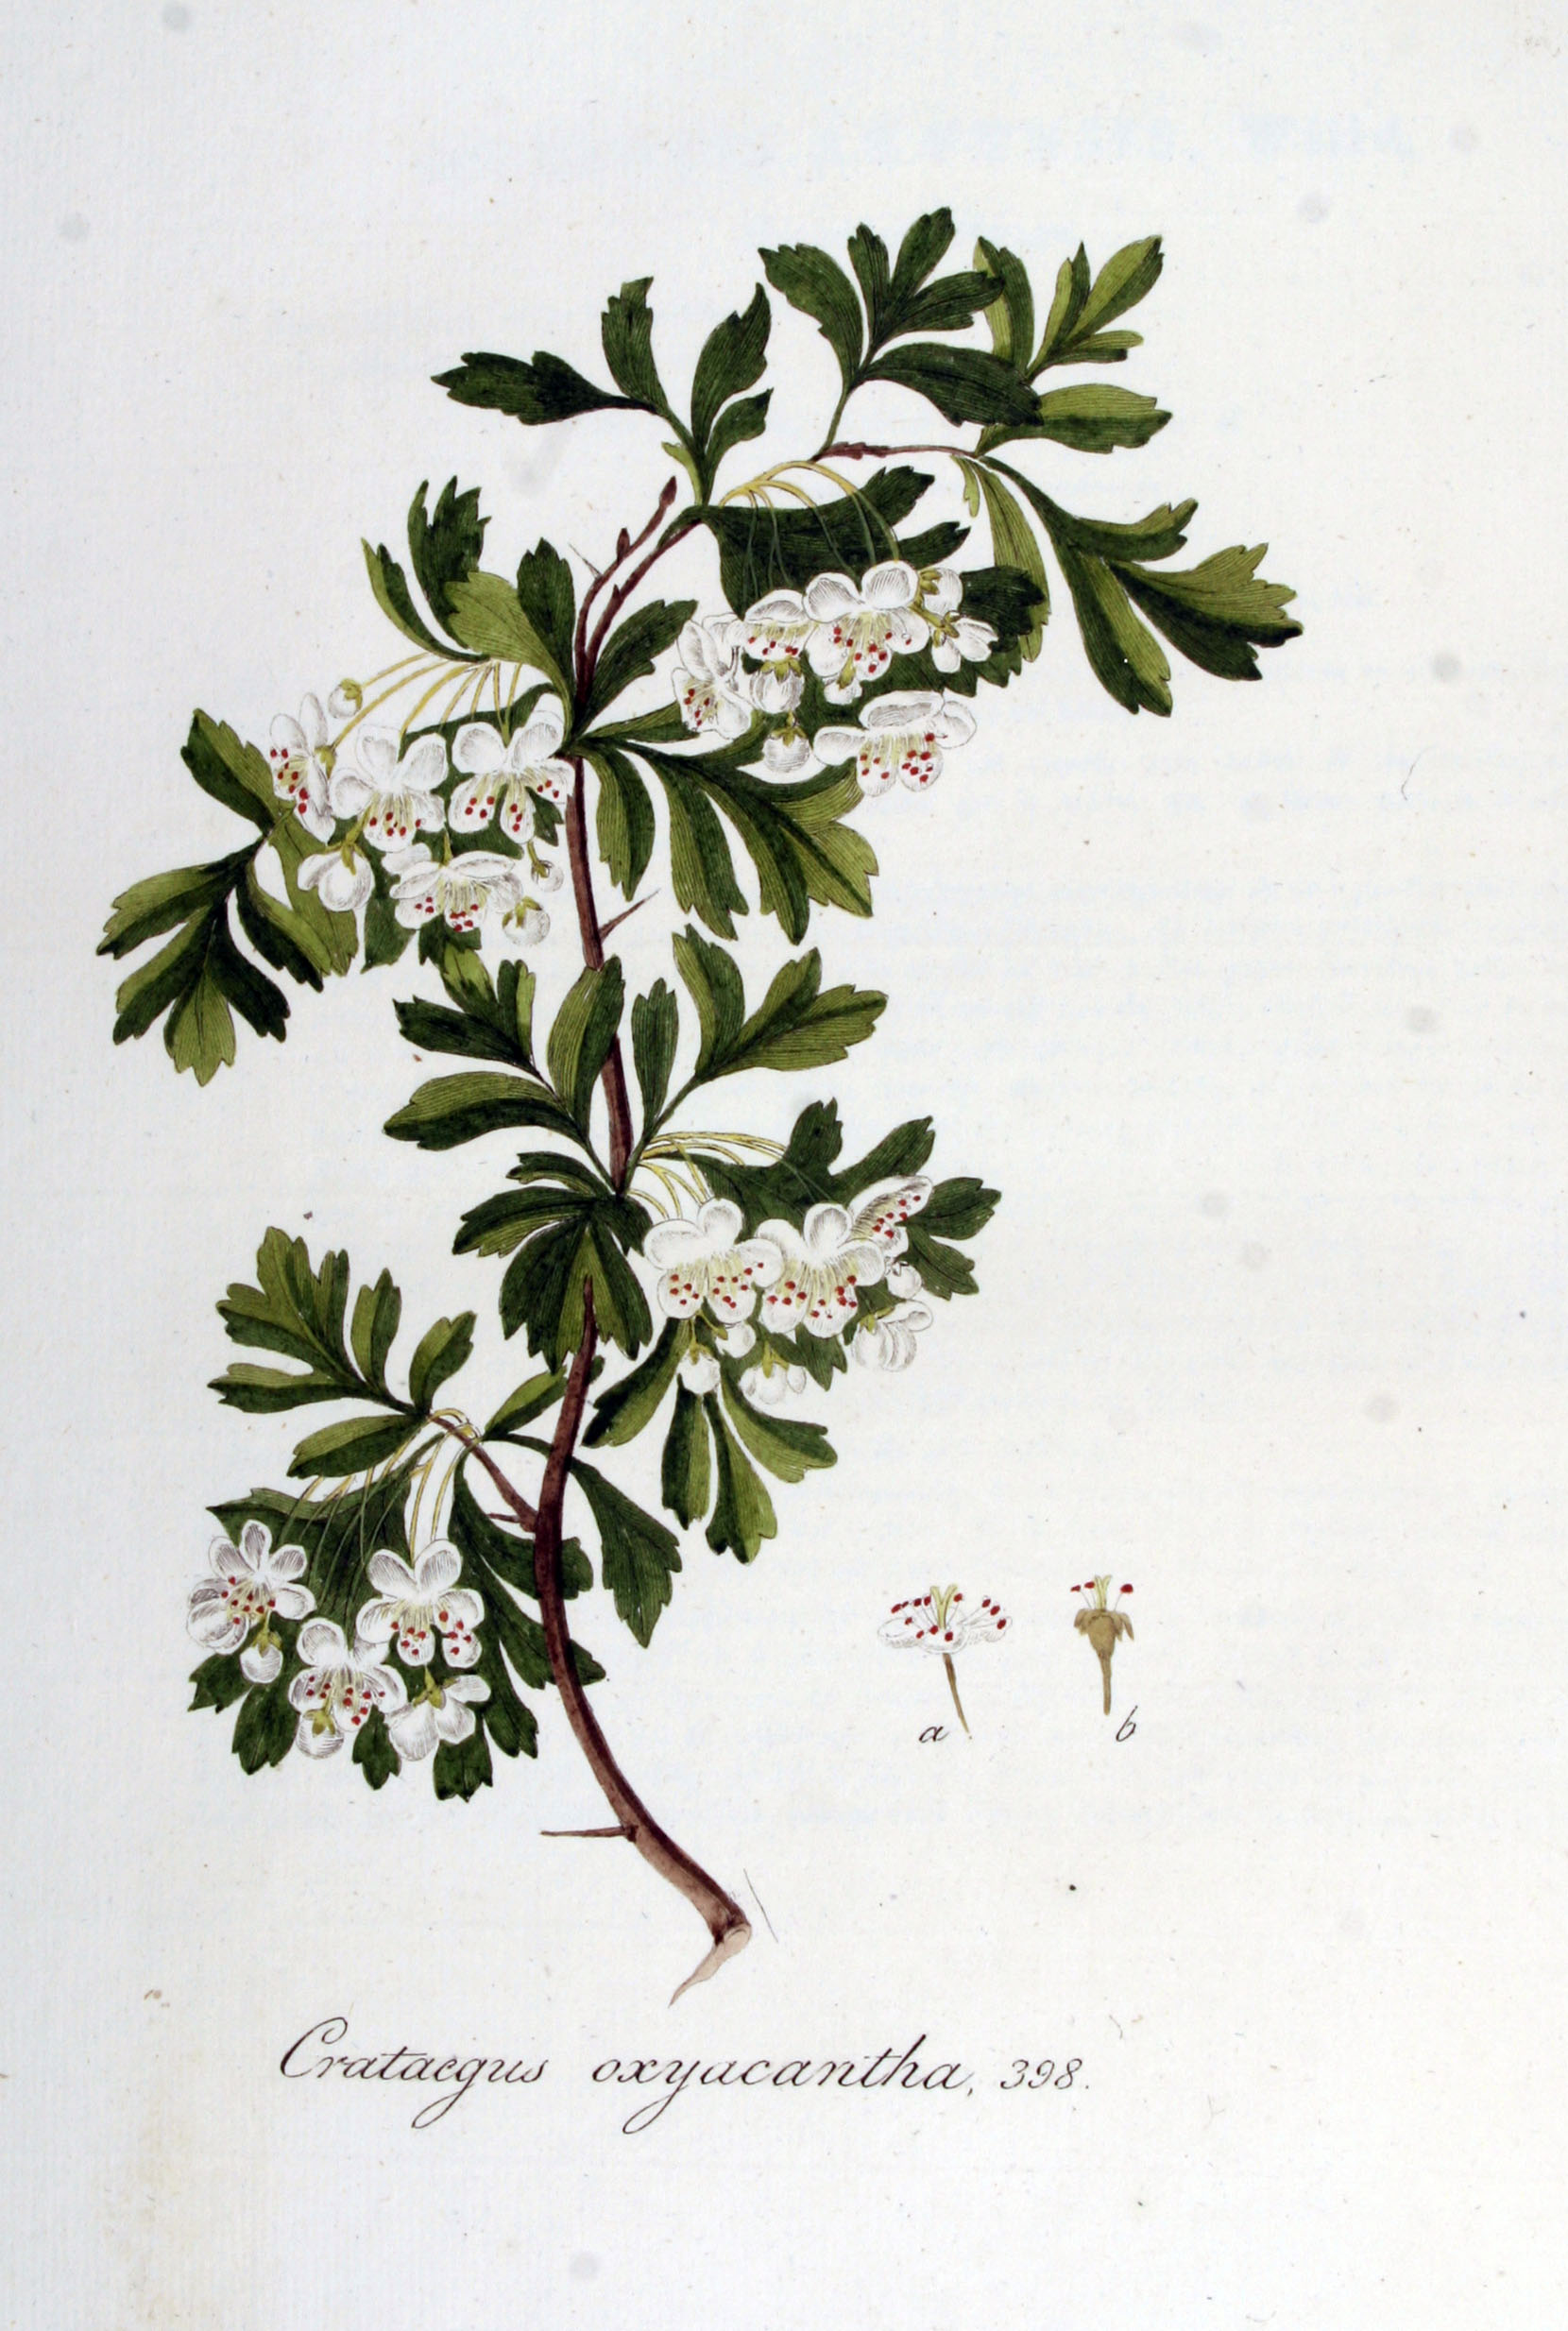 Crataegus Monogyna Drawing File:crataegus Oxyacantha